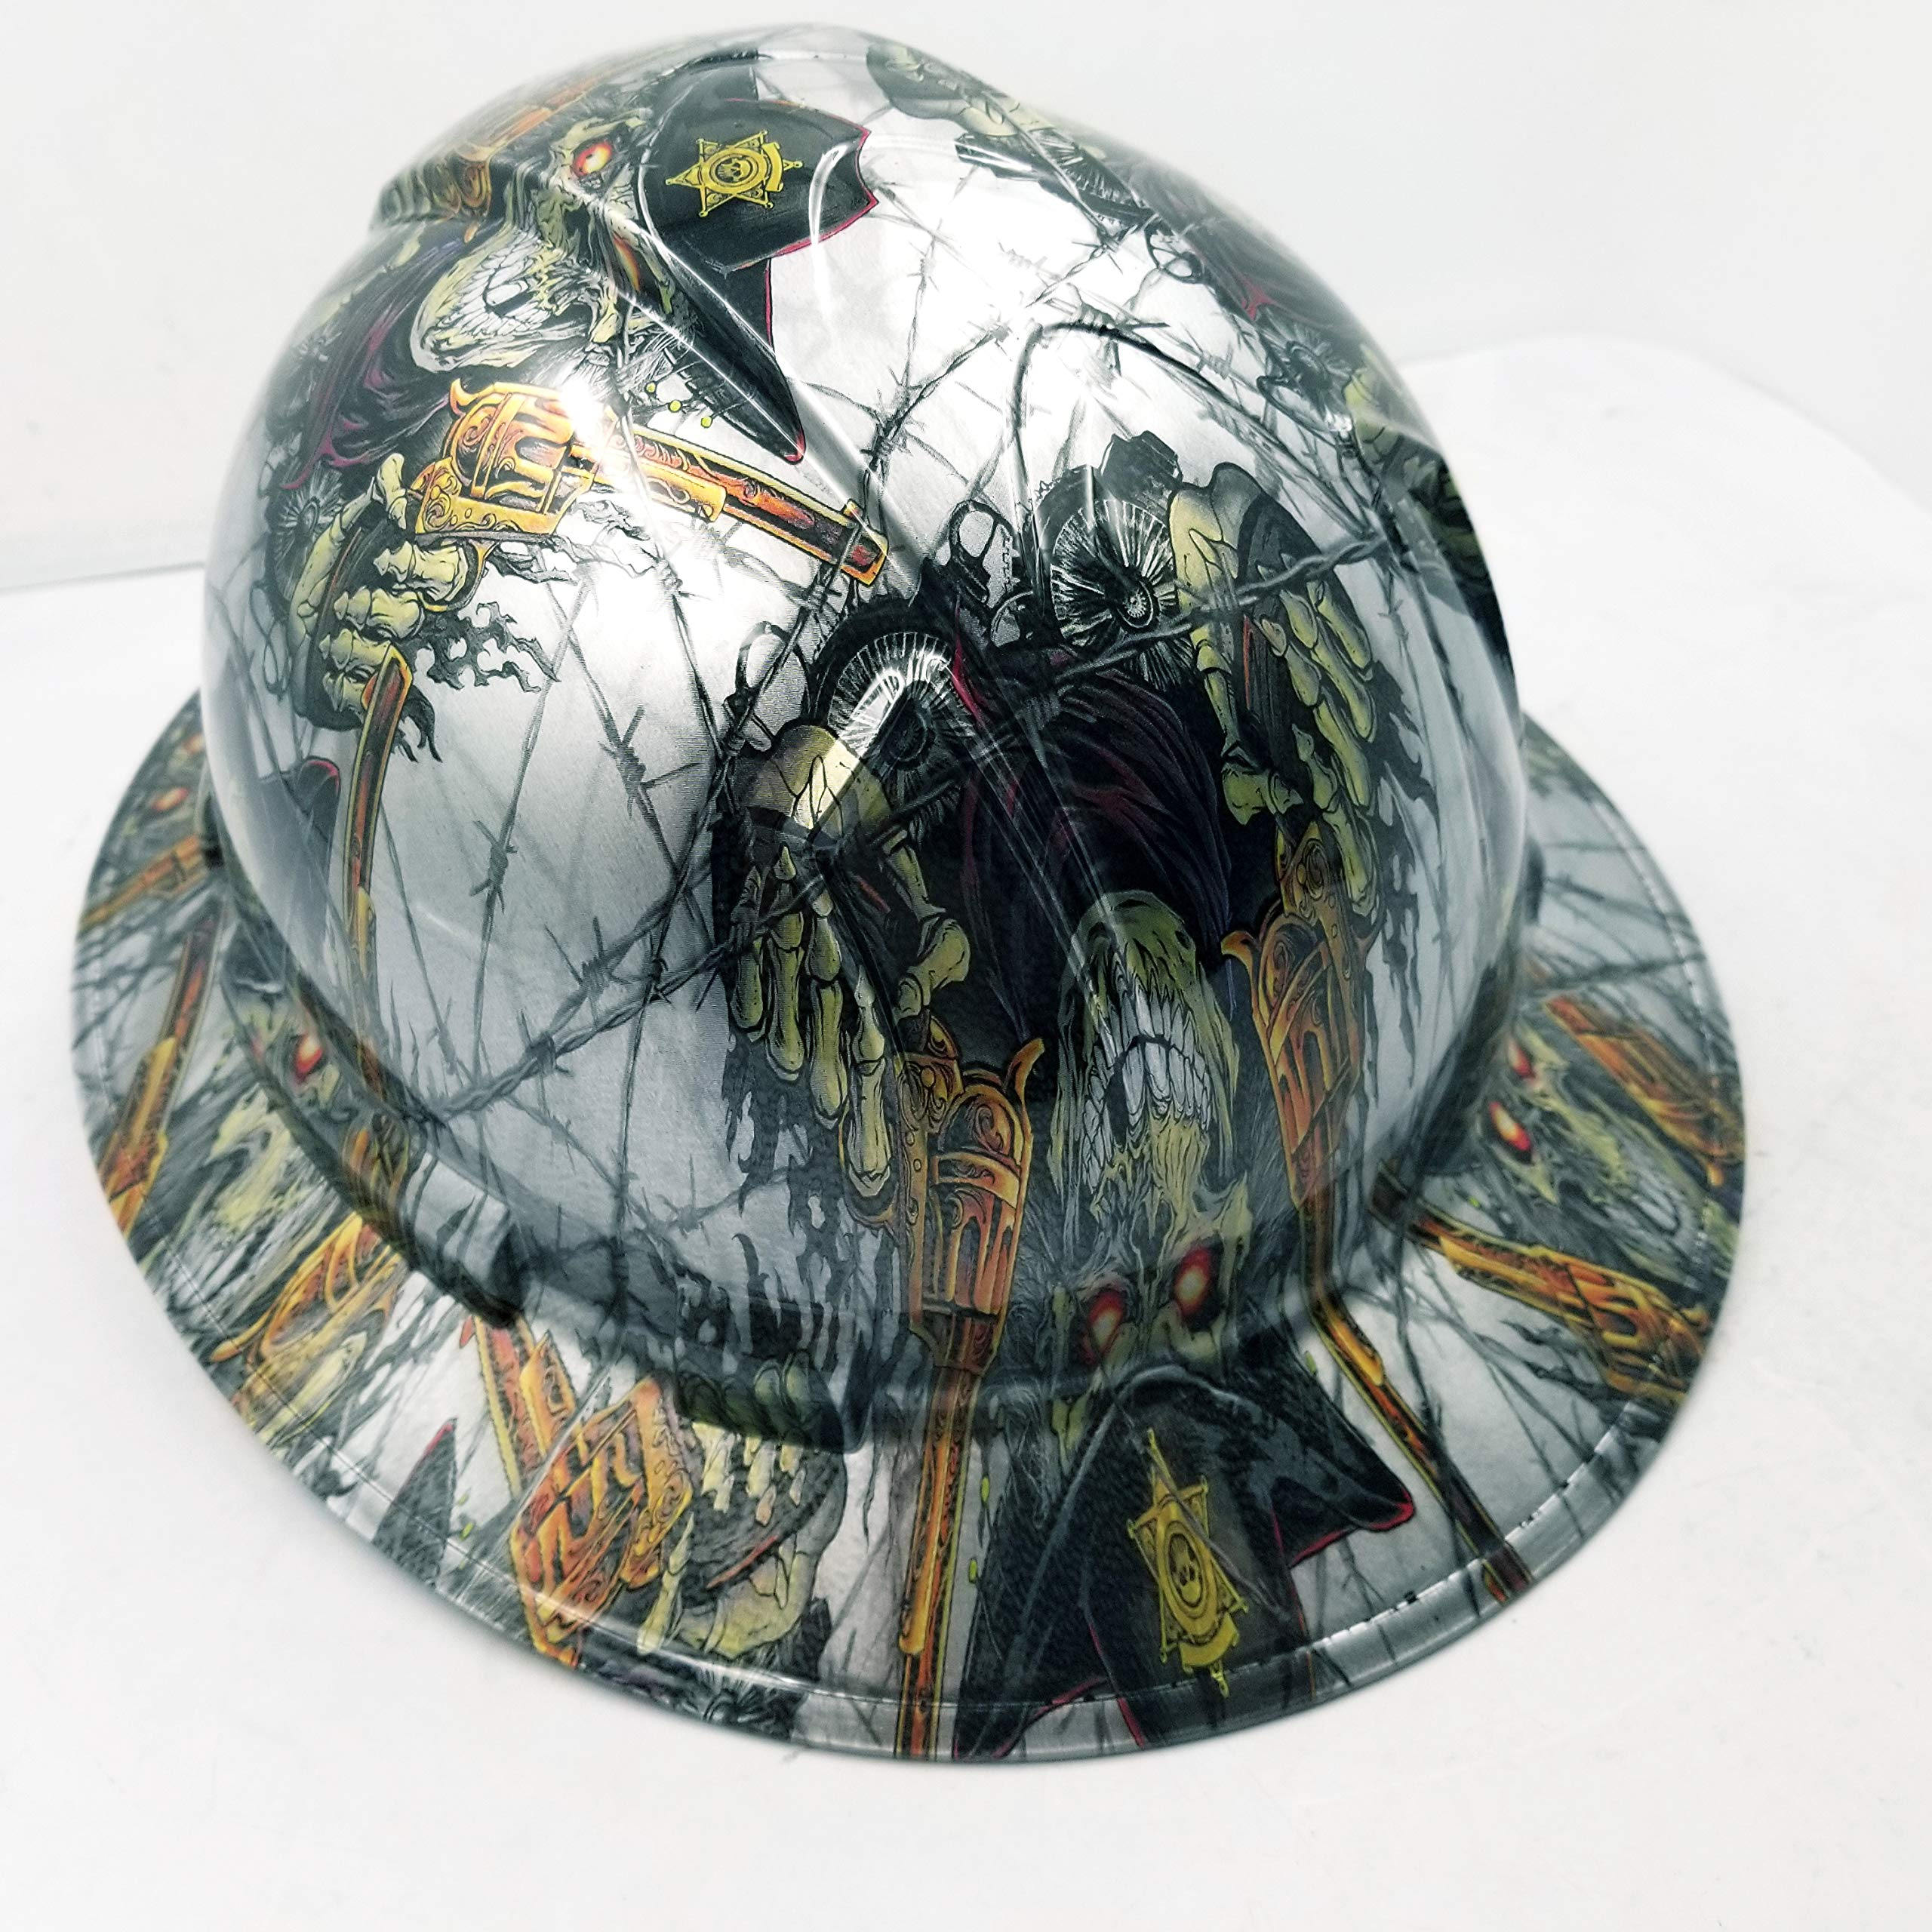 Wet Works Imaging Customized Pyramex Full Brim Dirty Dirty Harry Hard HAT with Ratcheting Suspension Custom LIDS Crazy Sick Construction PPE by Wet Works Imaging (Image #4)